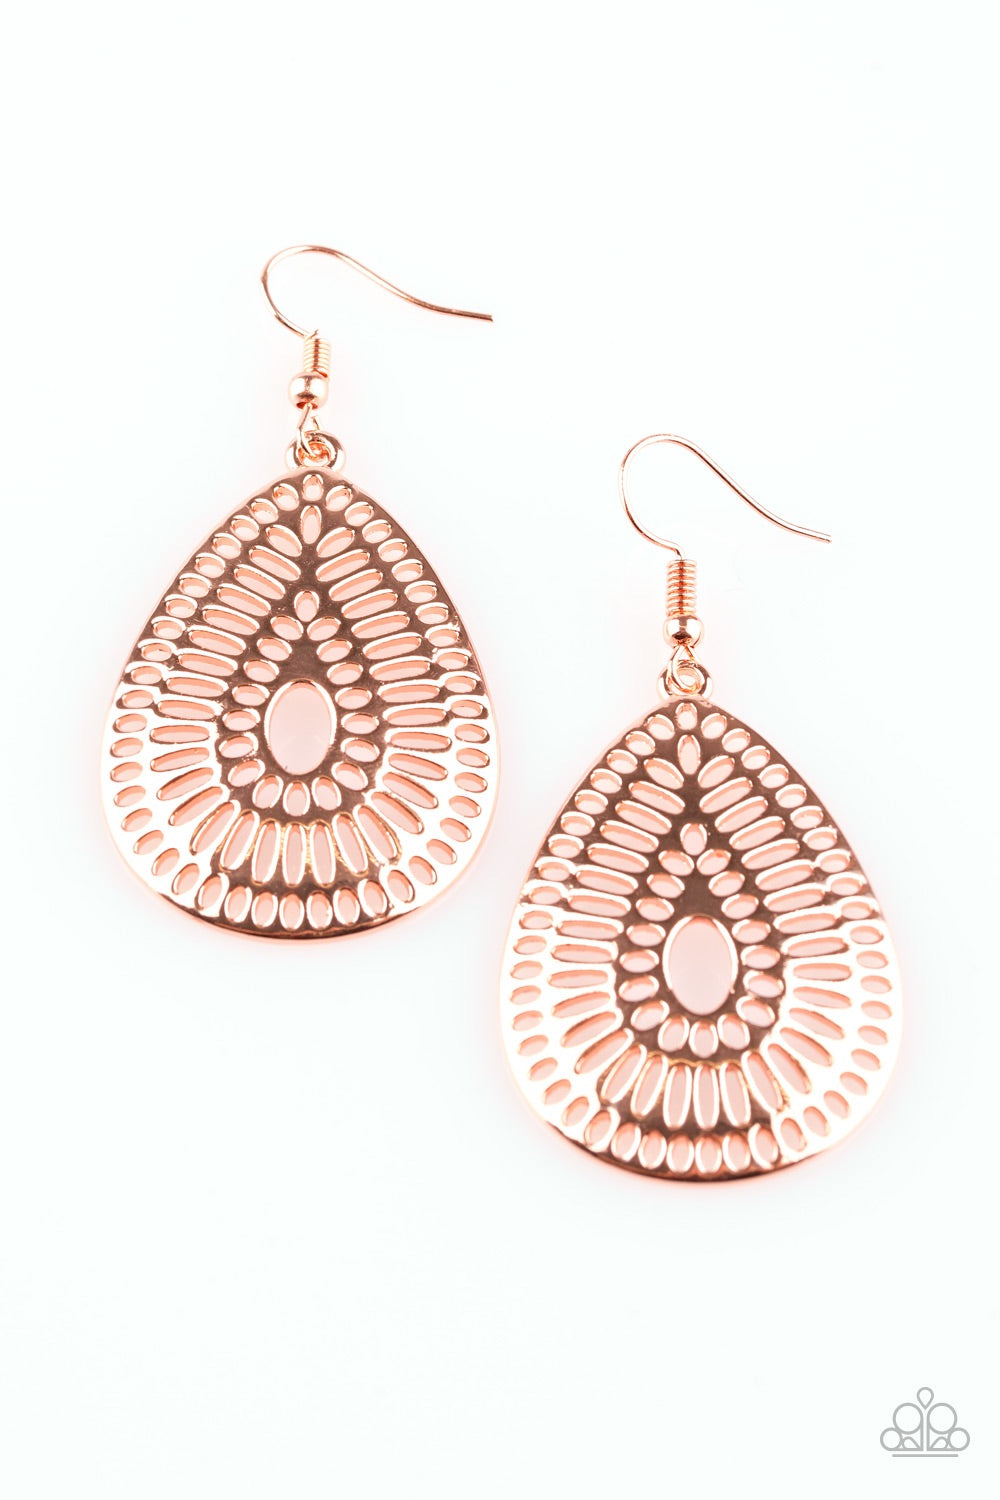 Paparazzi You Look GRATE! - Copper Earrings